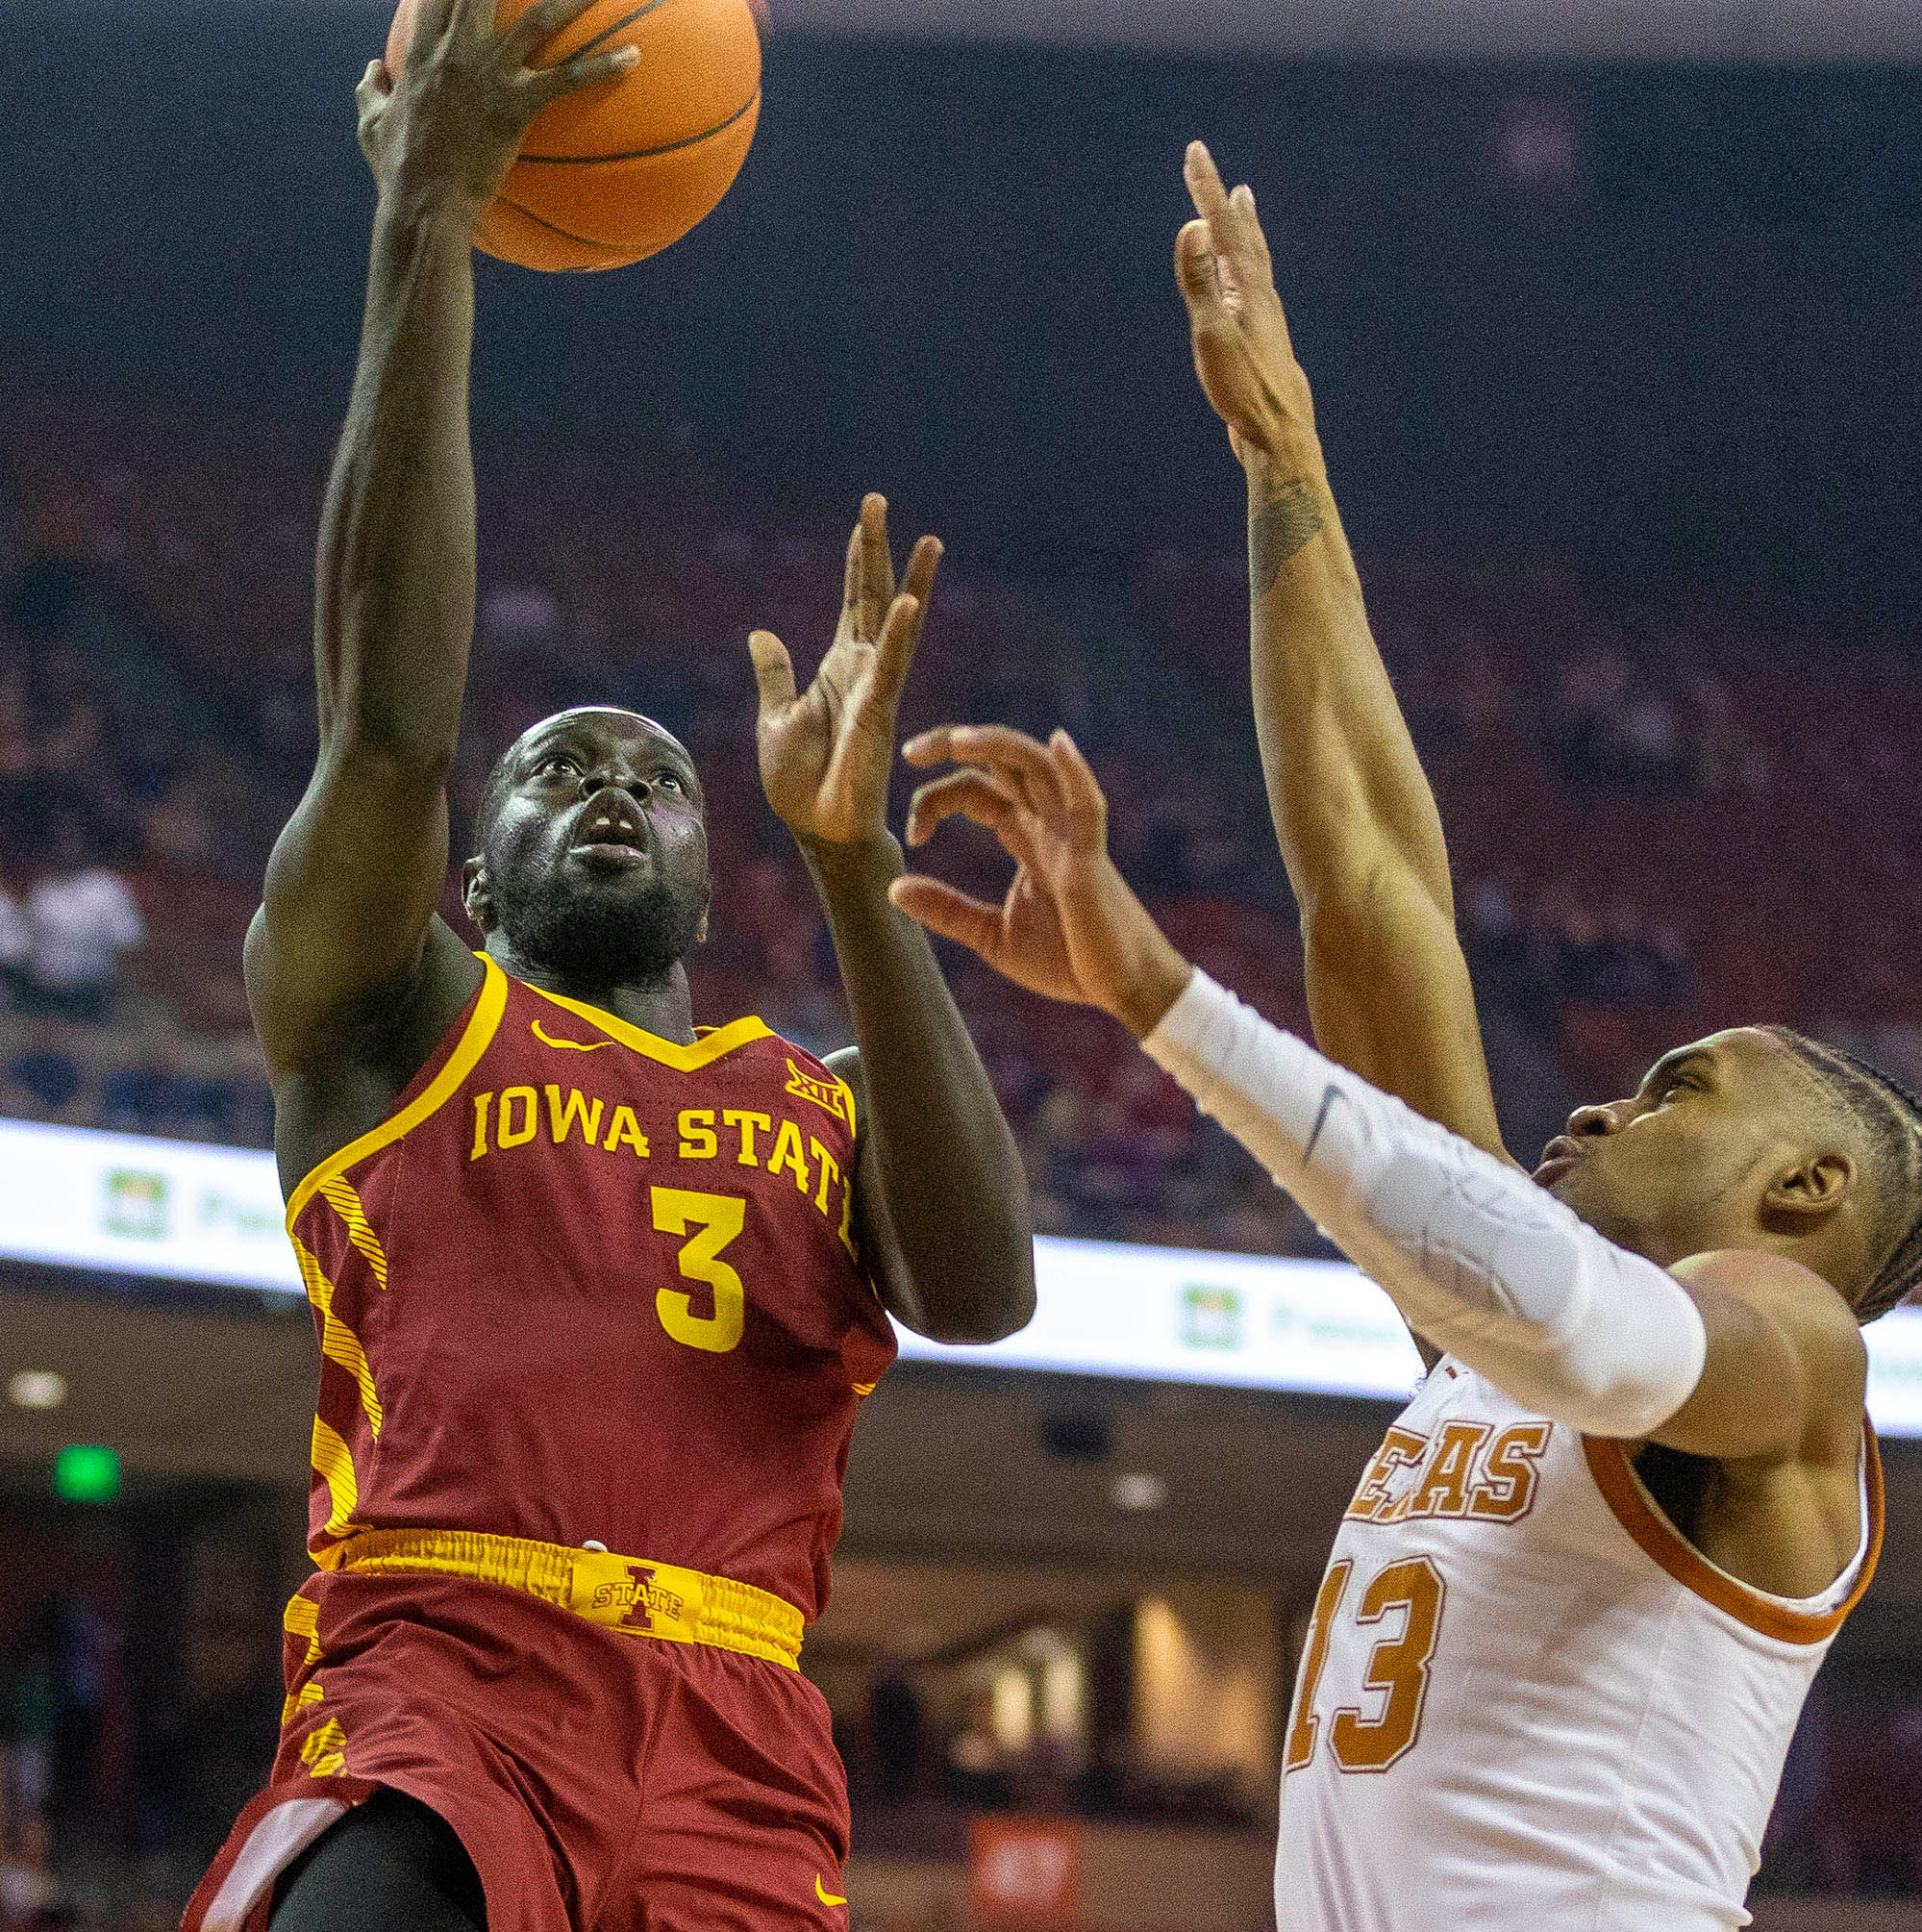 Iowa State's Marial Shayok becomes a consensus all-Big 12 Conference first-team selection